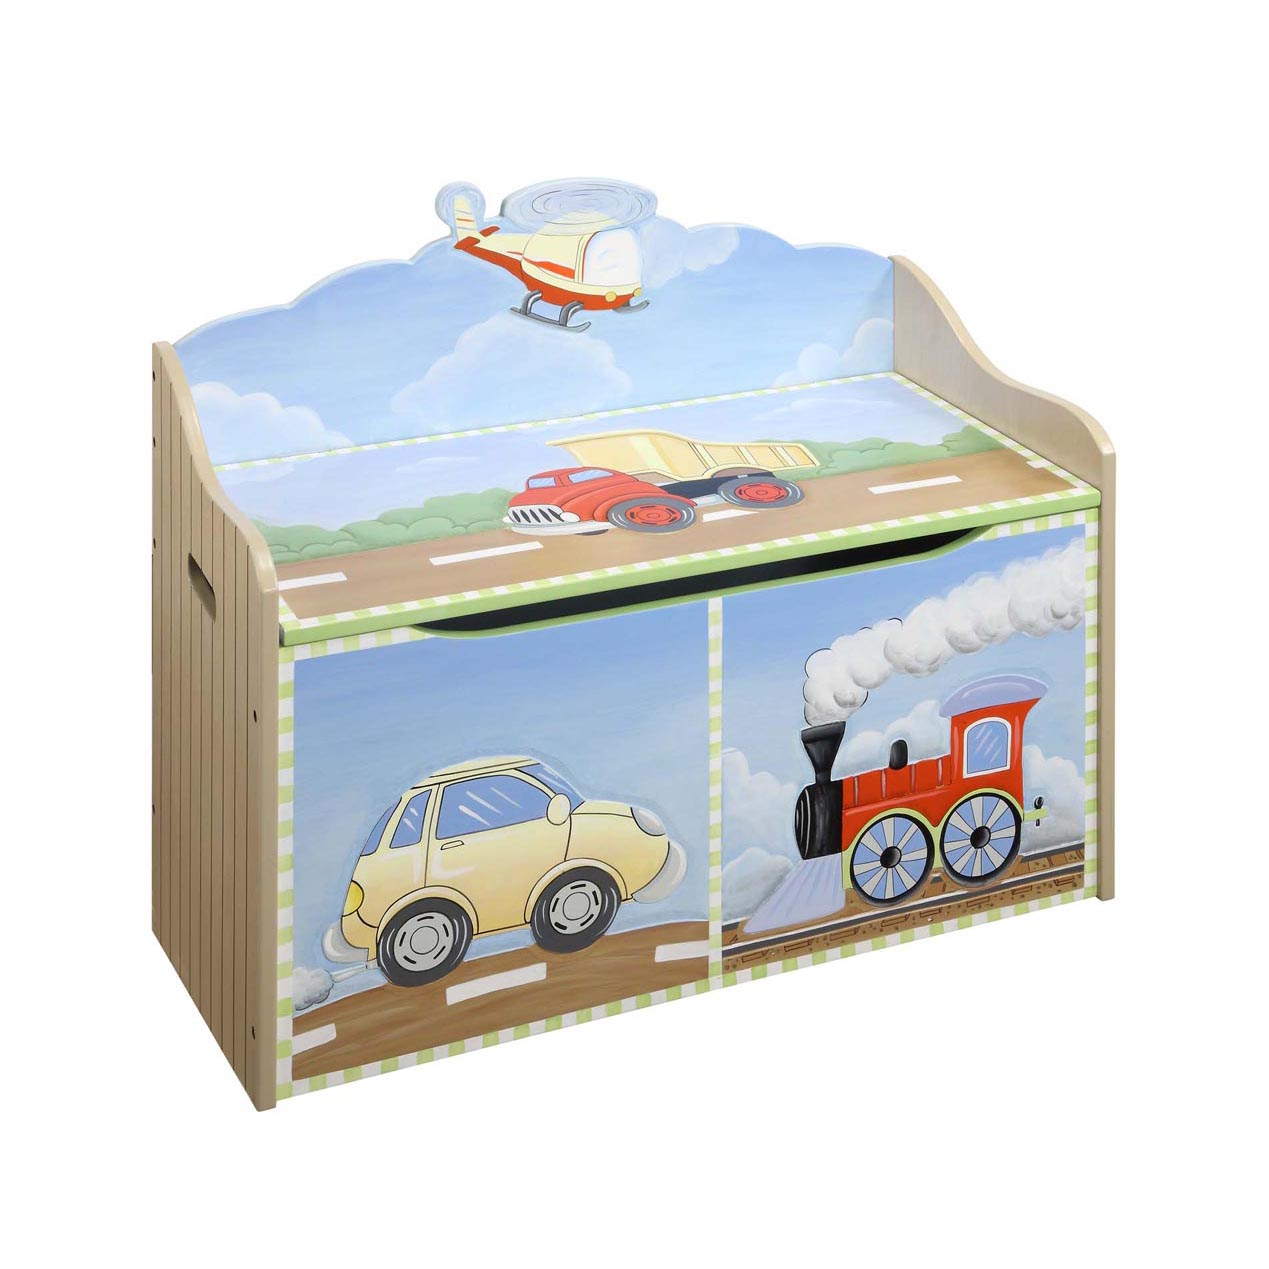 Transportation Toy Chest by Teamson - Toy Box